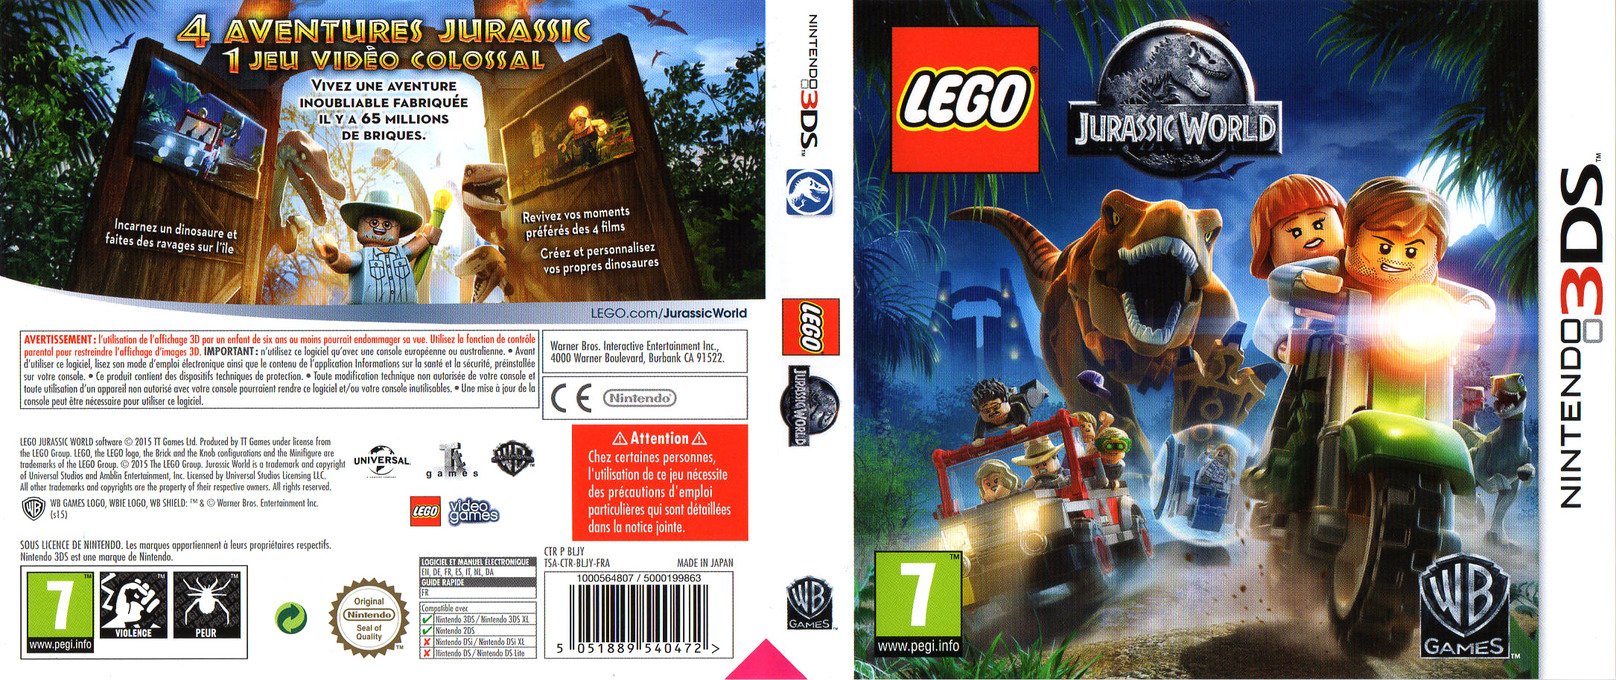 LEGO Jurassic World 3DS coverfullHQ (BLJY)